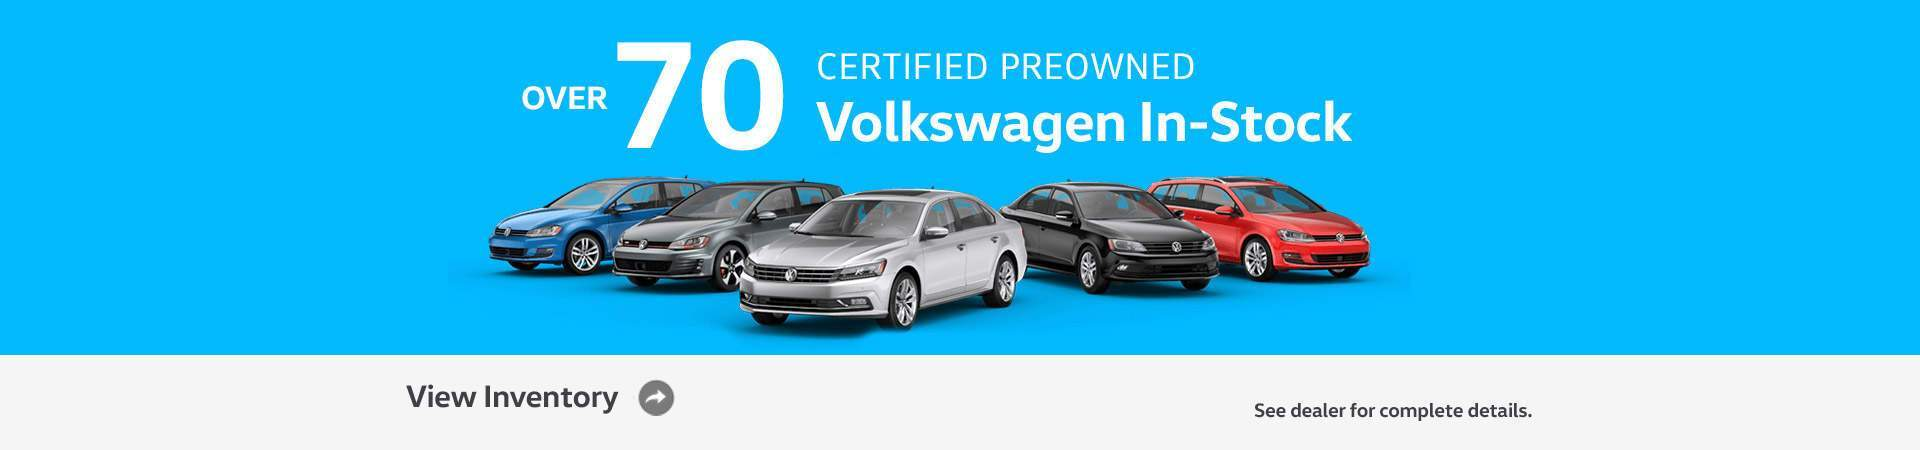 Volkswagen Dealership North Charleston Sc Pre Owned Cars